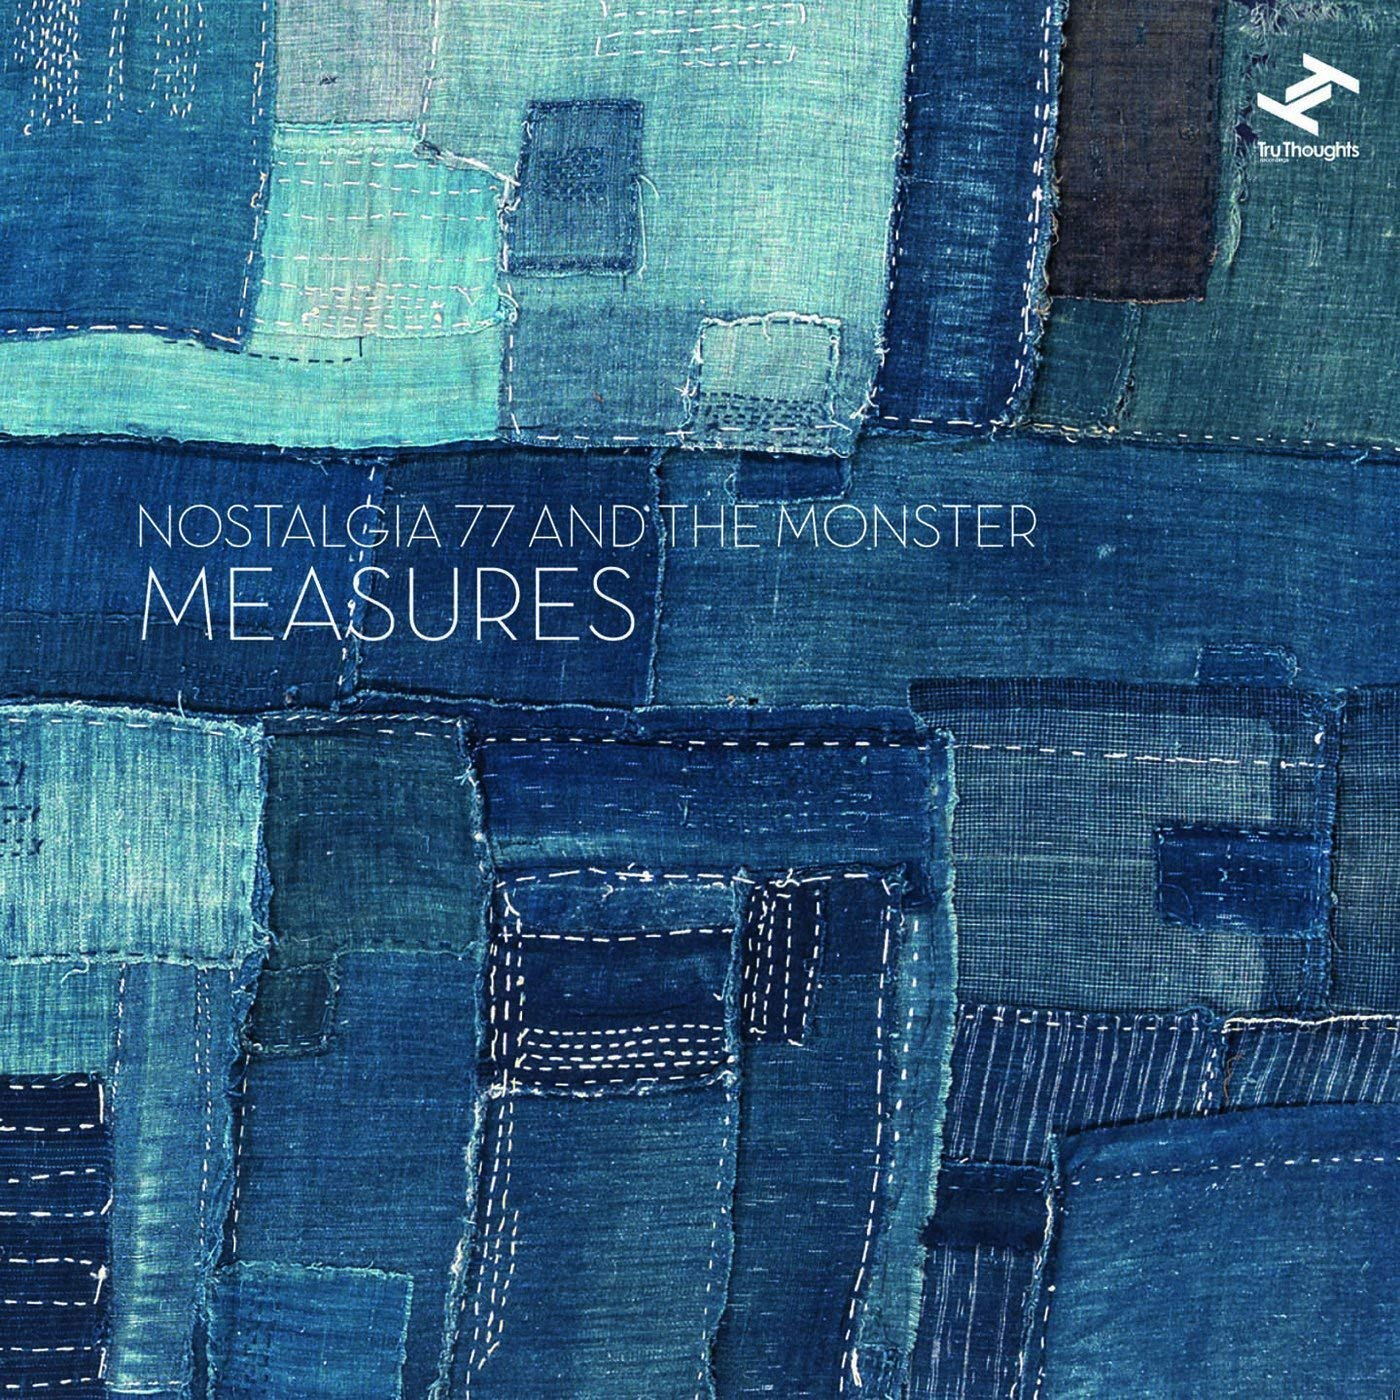 Image of Measures / Nostalgia 77 & The Monster